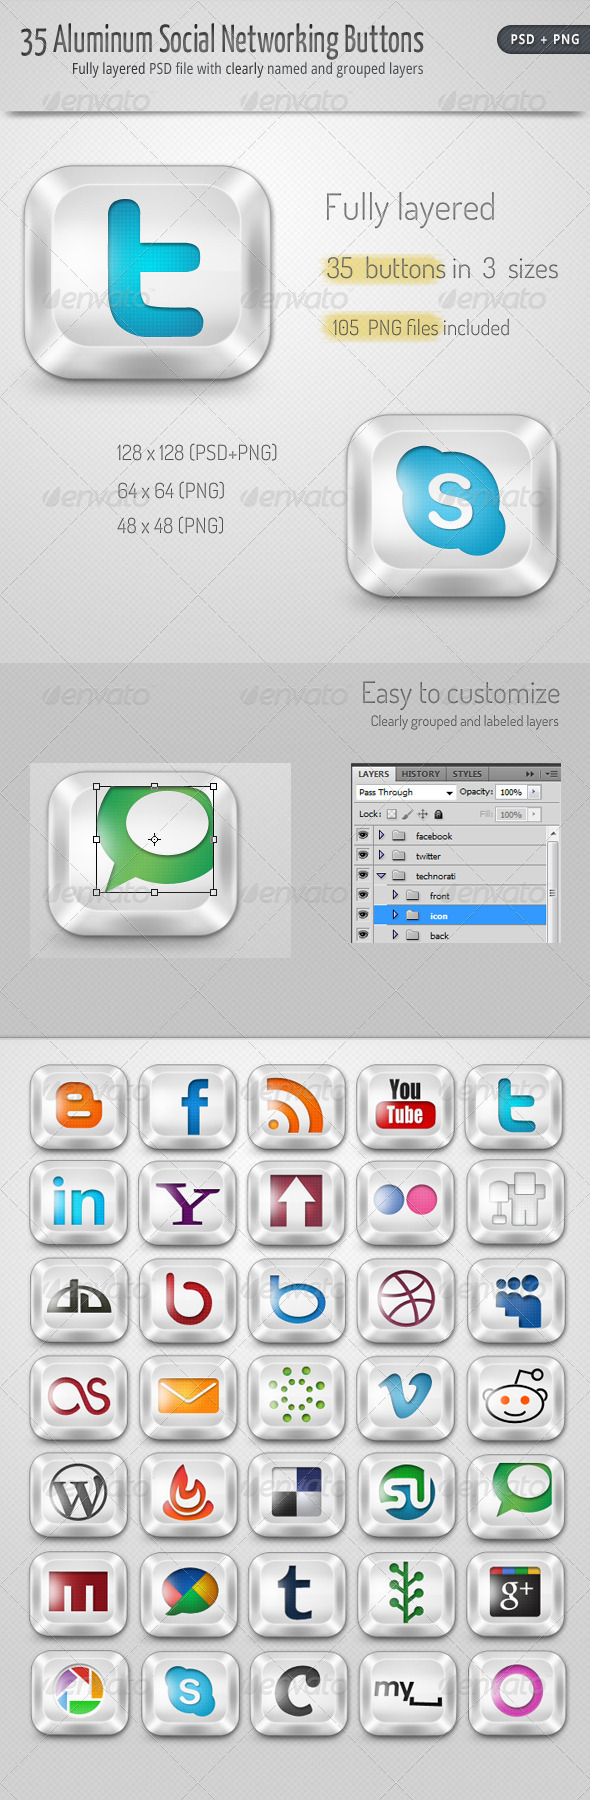 GraphicRiver 30 Aluminum Social Networking Buttons 367249